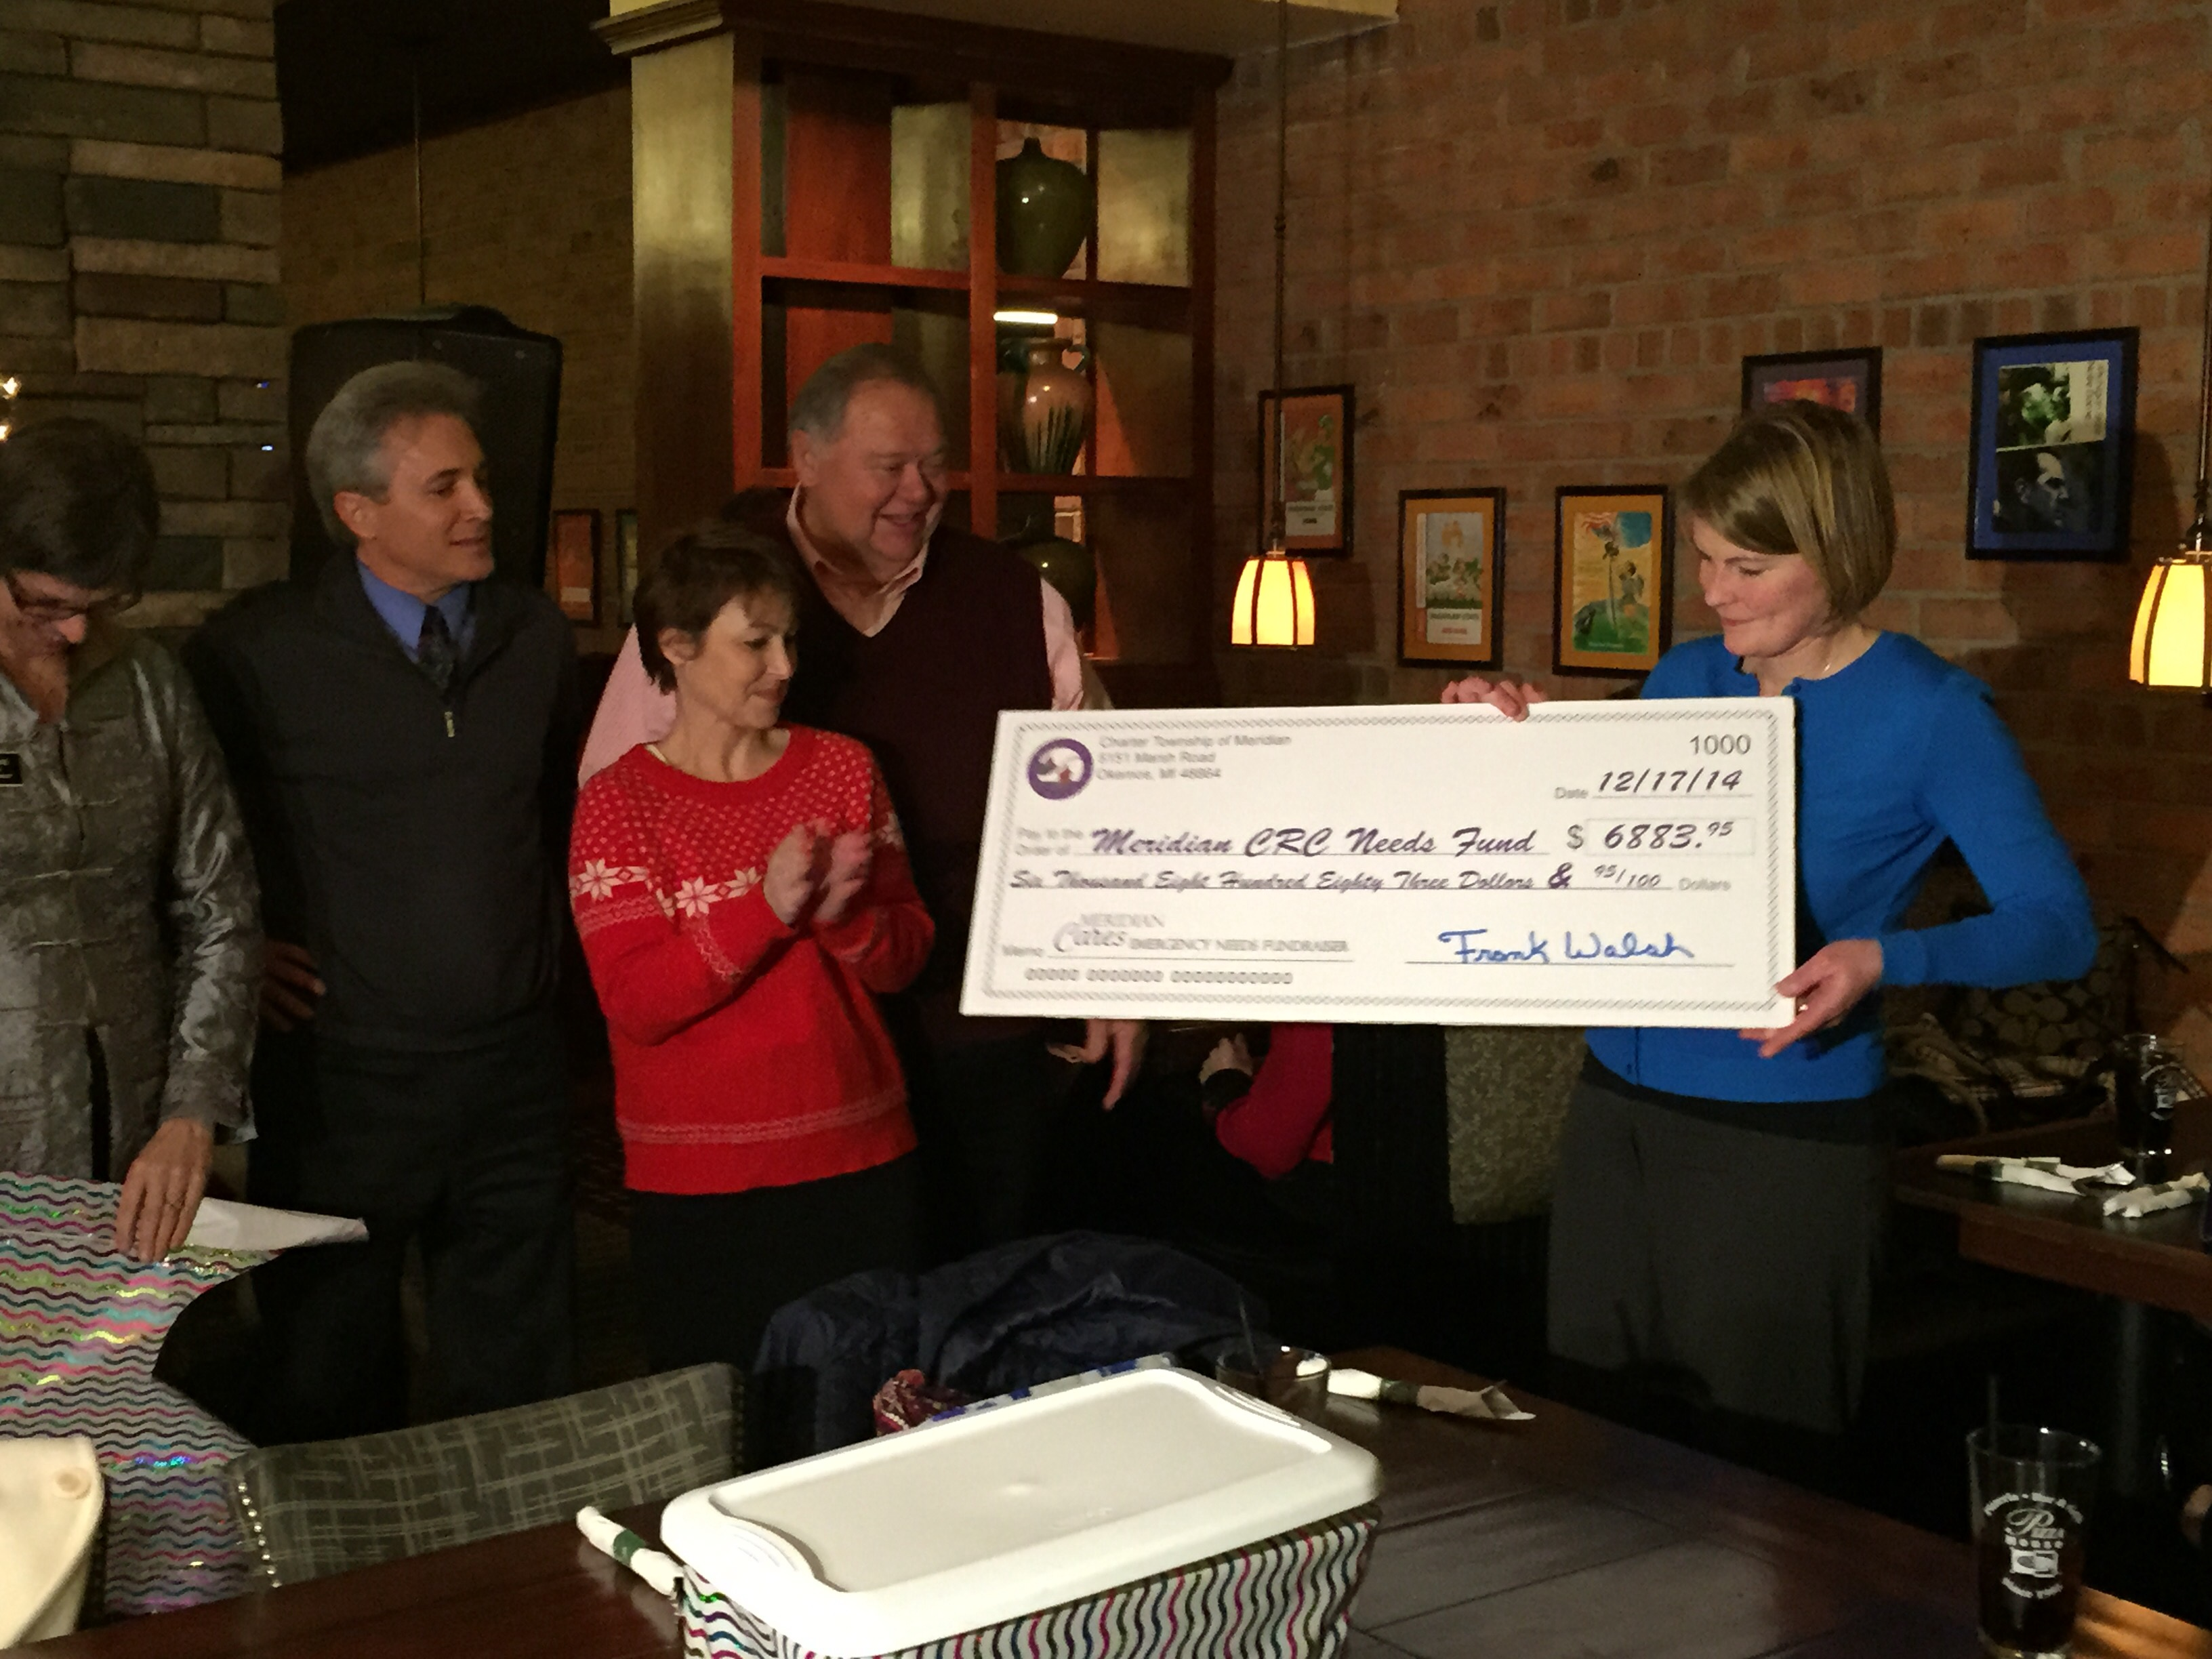 Meridian Cares Program Exceeds Goal; $6,883 Check  Presented to Help Those in Need